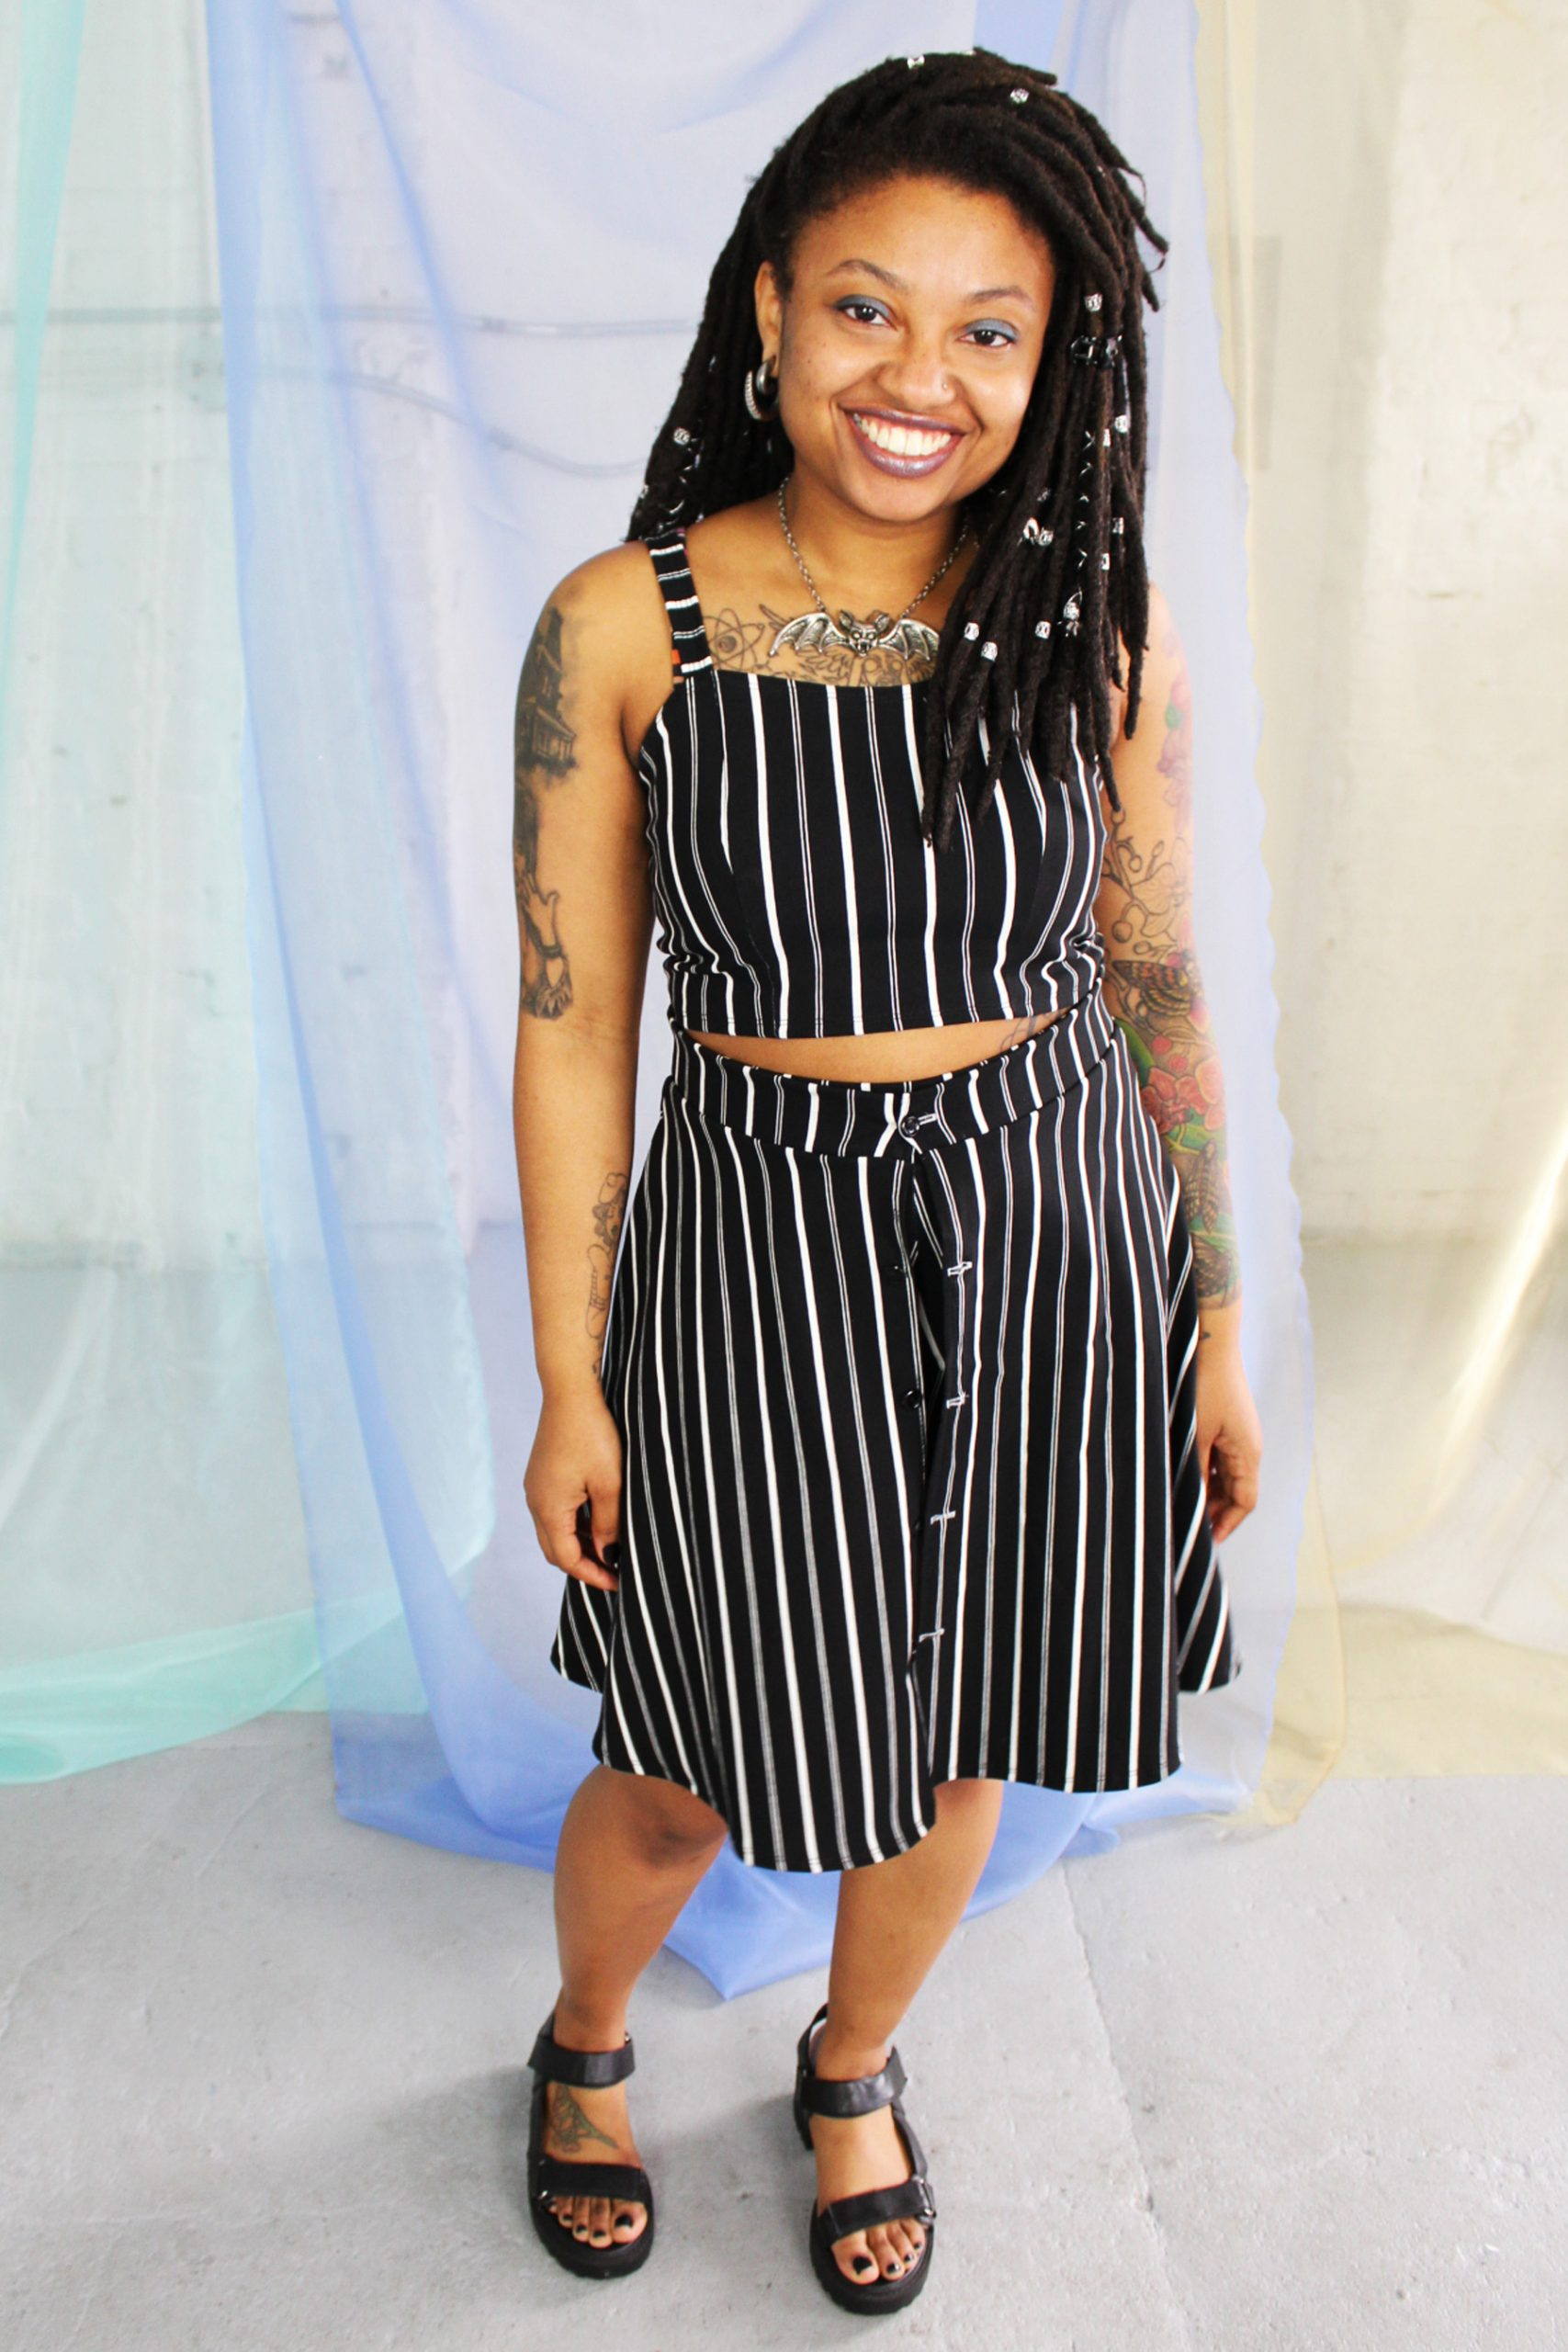 Black smiling straight size model with locs modeling black and white striped crop top and skirt - ethically handmade in NYC